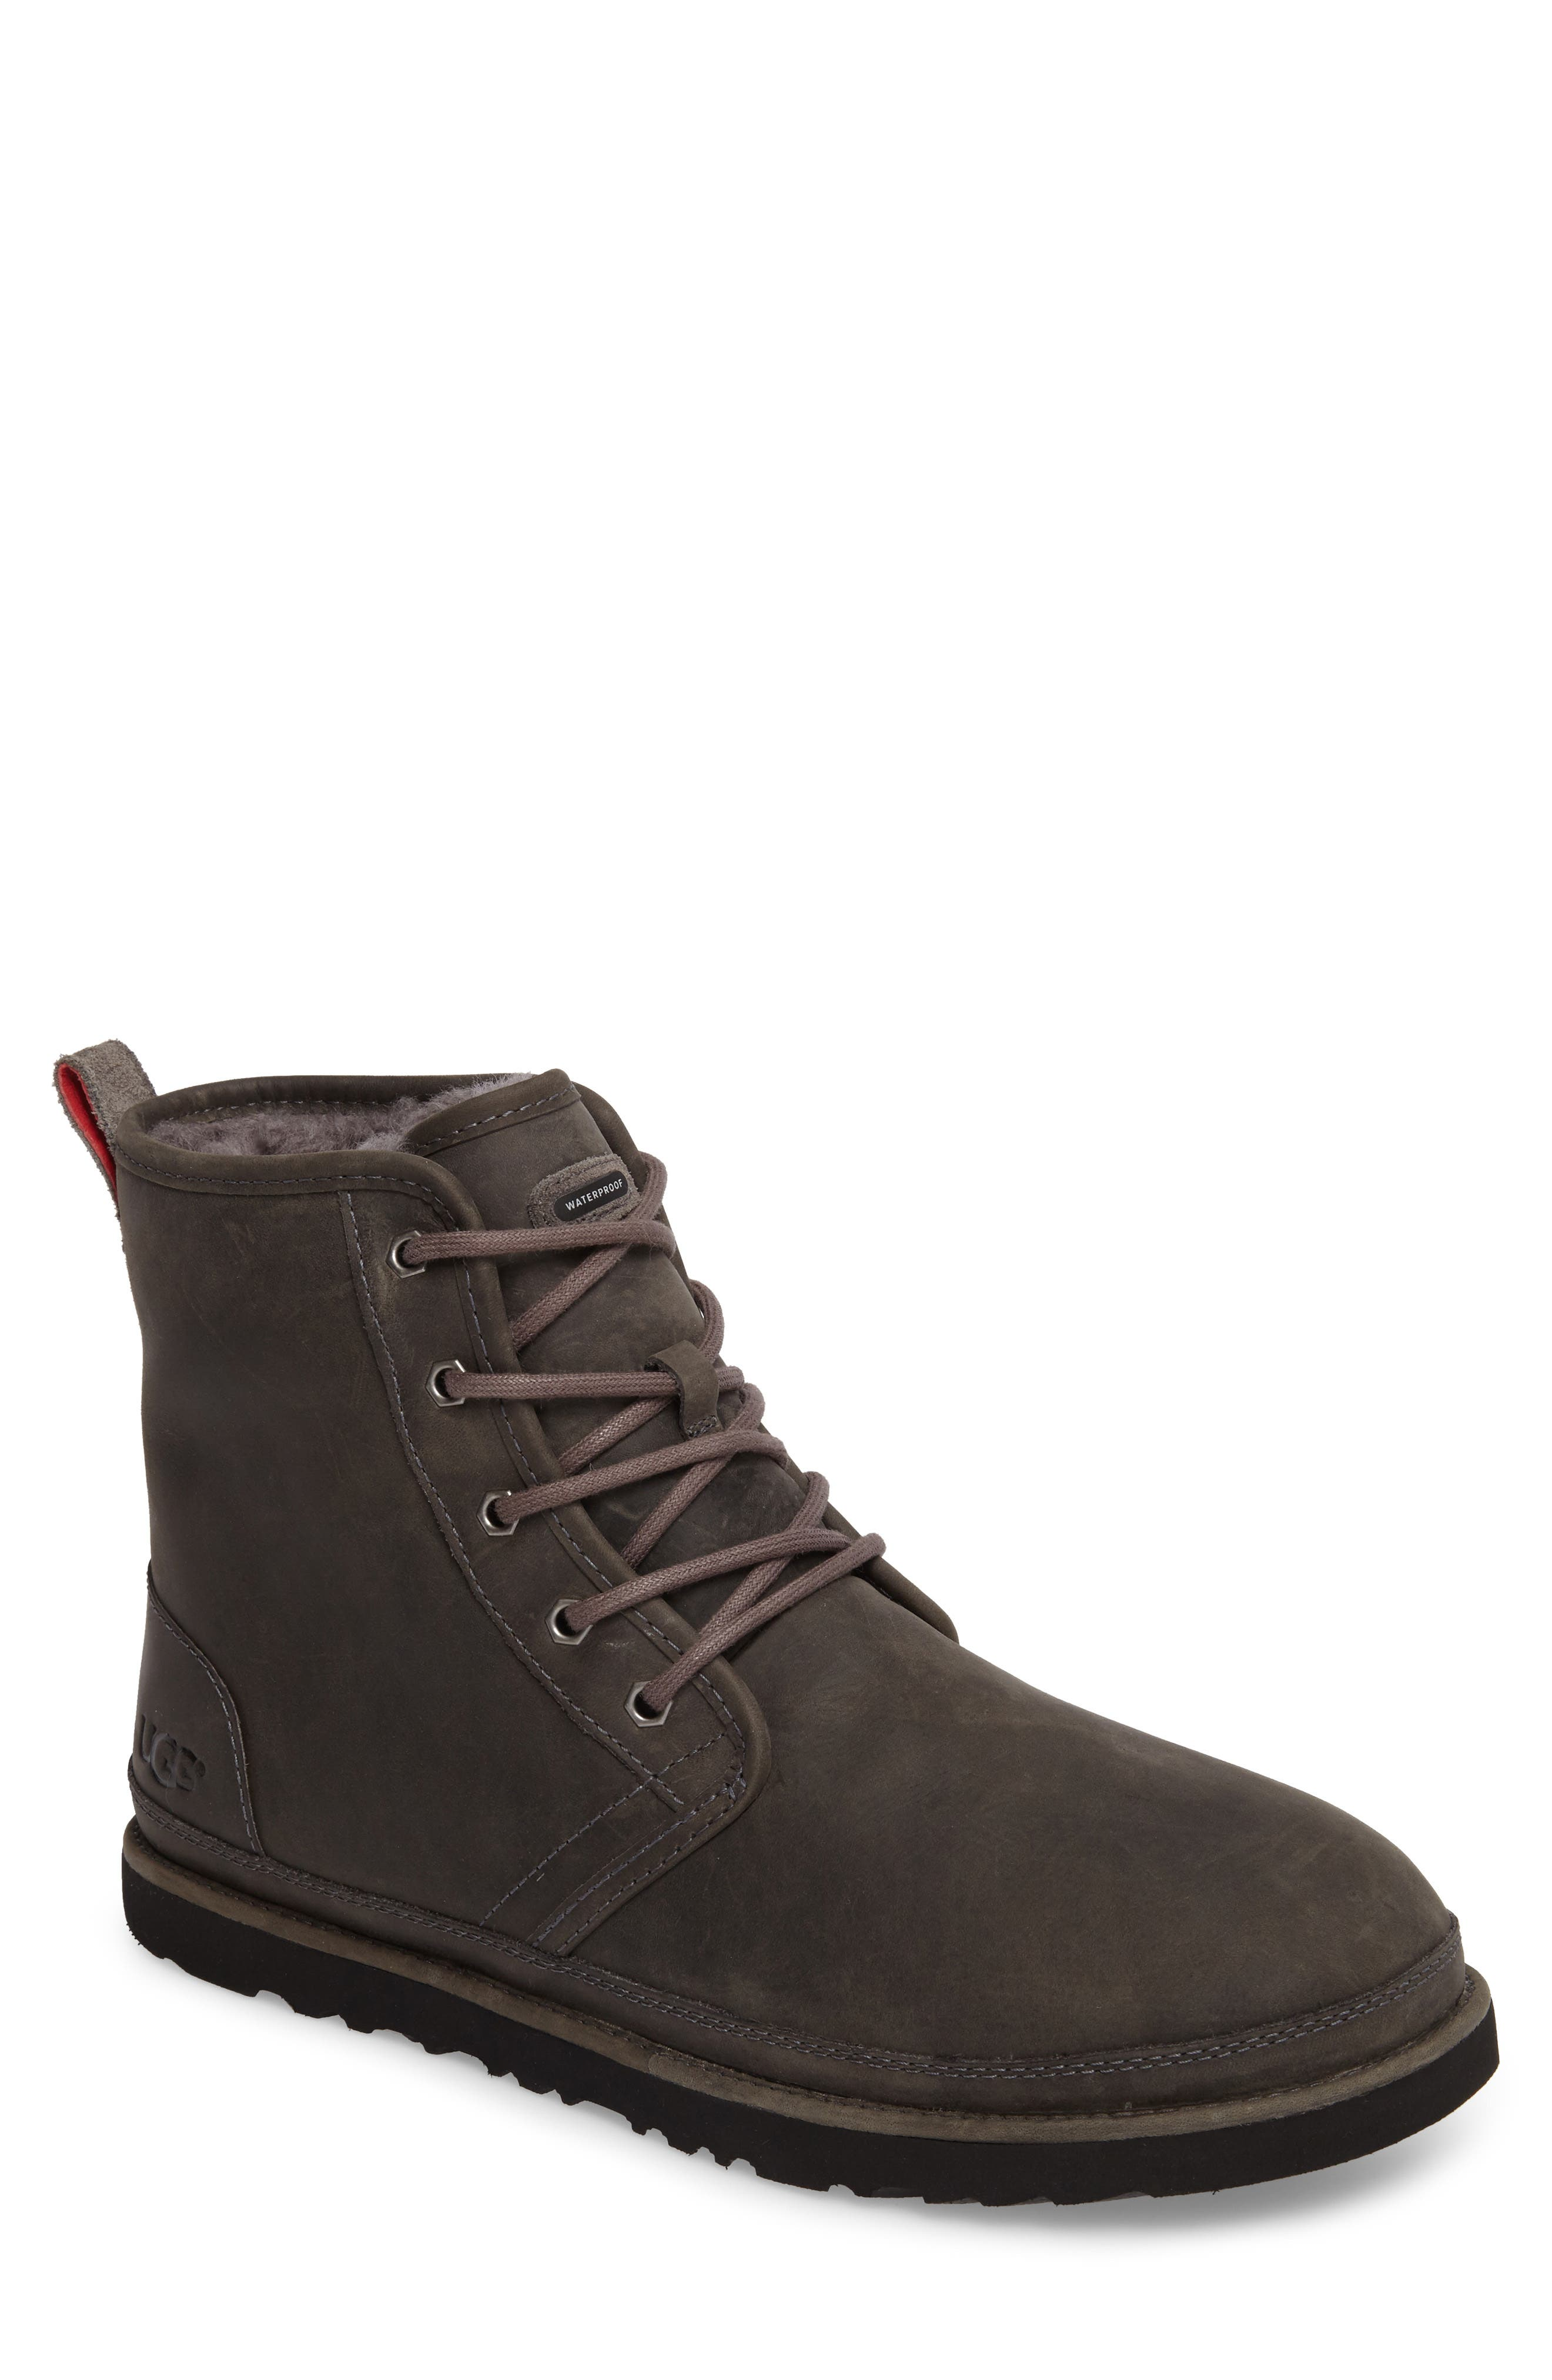 Harkley Plain Toe Boot,                         Main,                         color, Charcoal